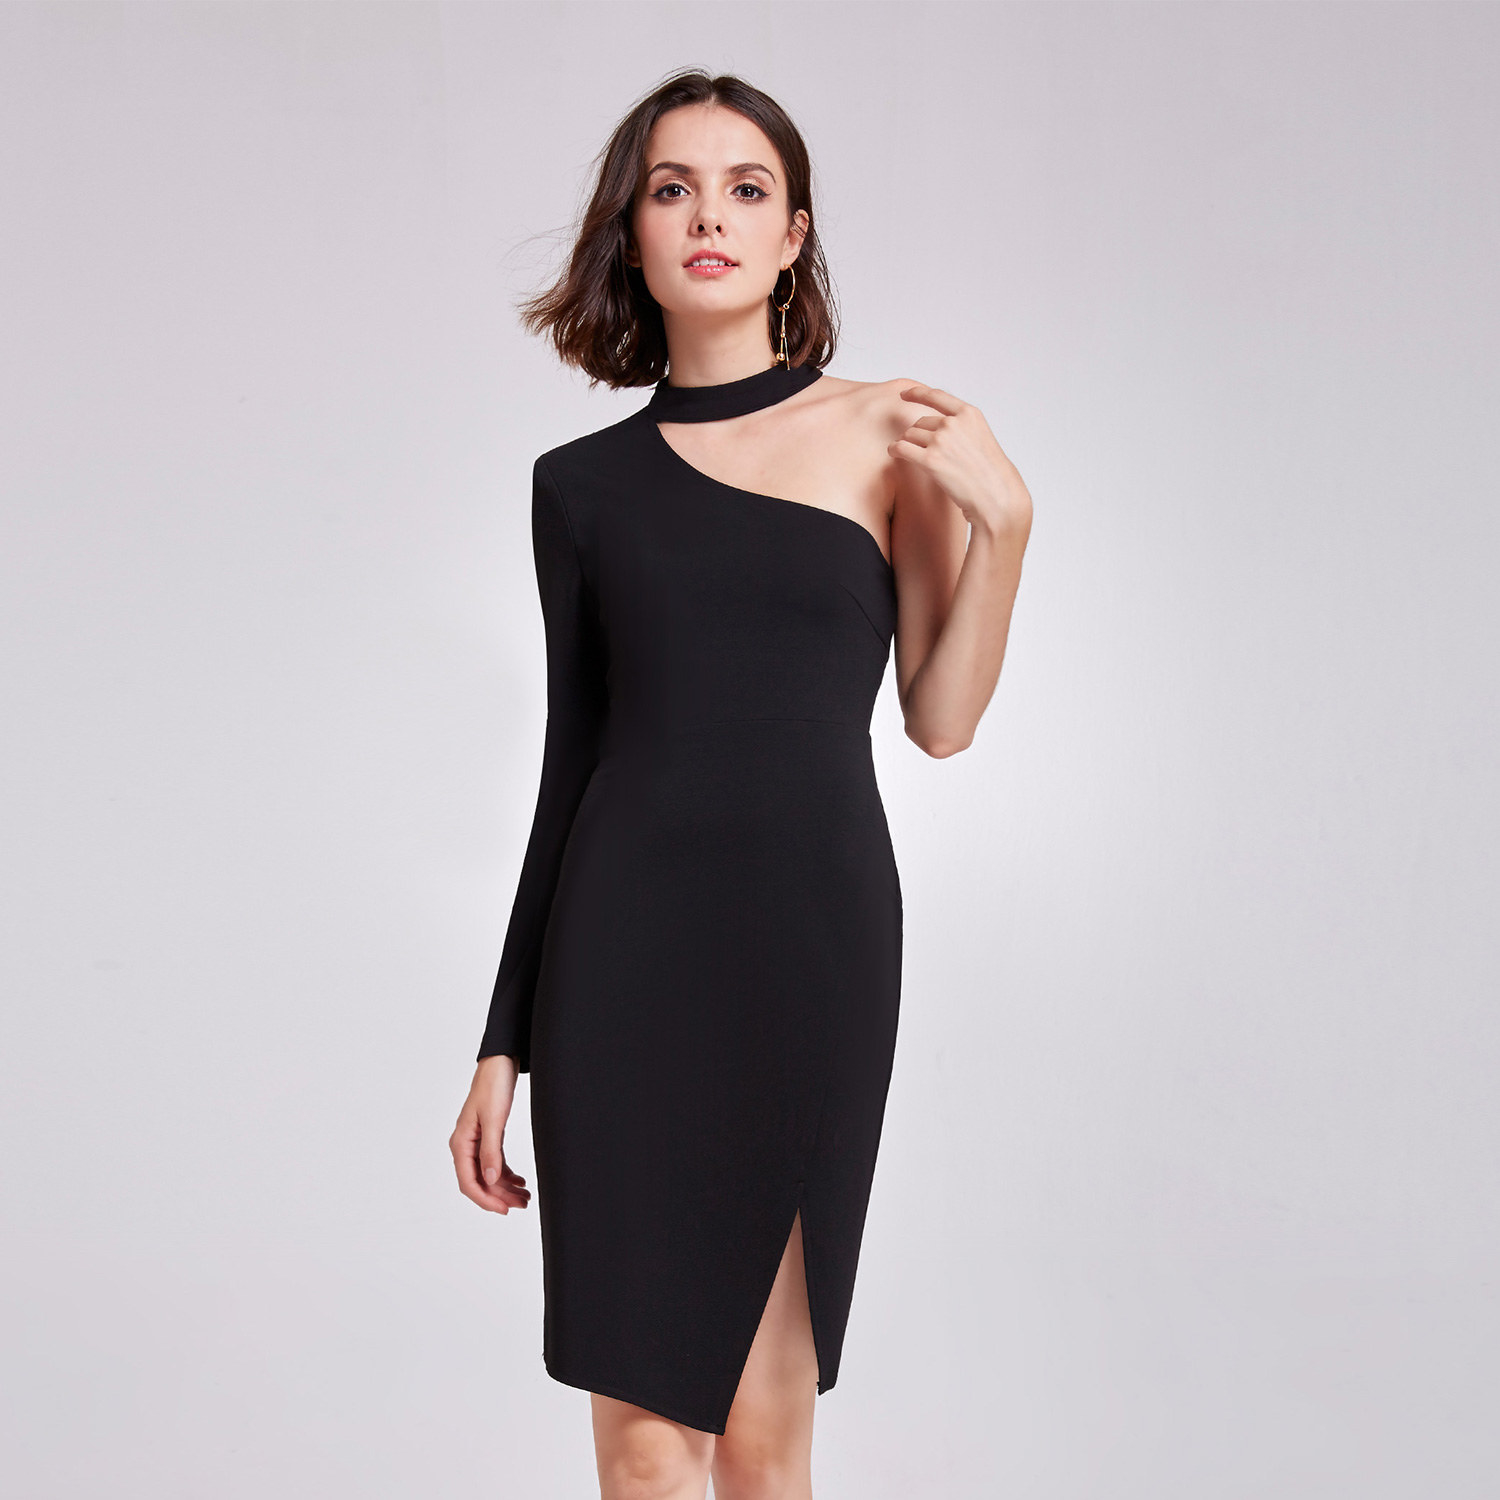 576fdcaffa8 27 Little Black Dresses From Walmart You Need In Your Life